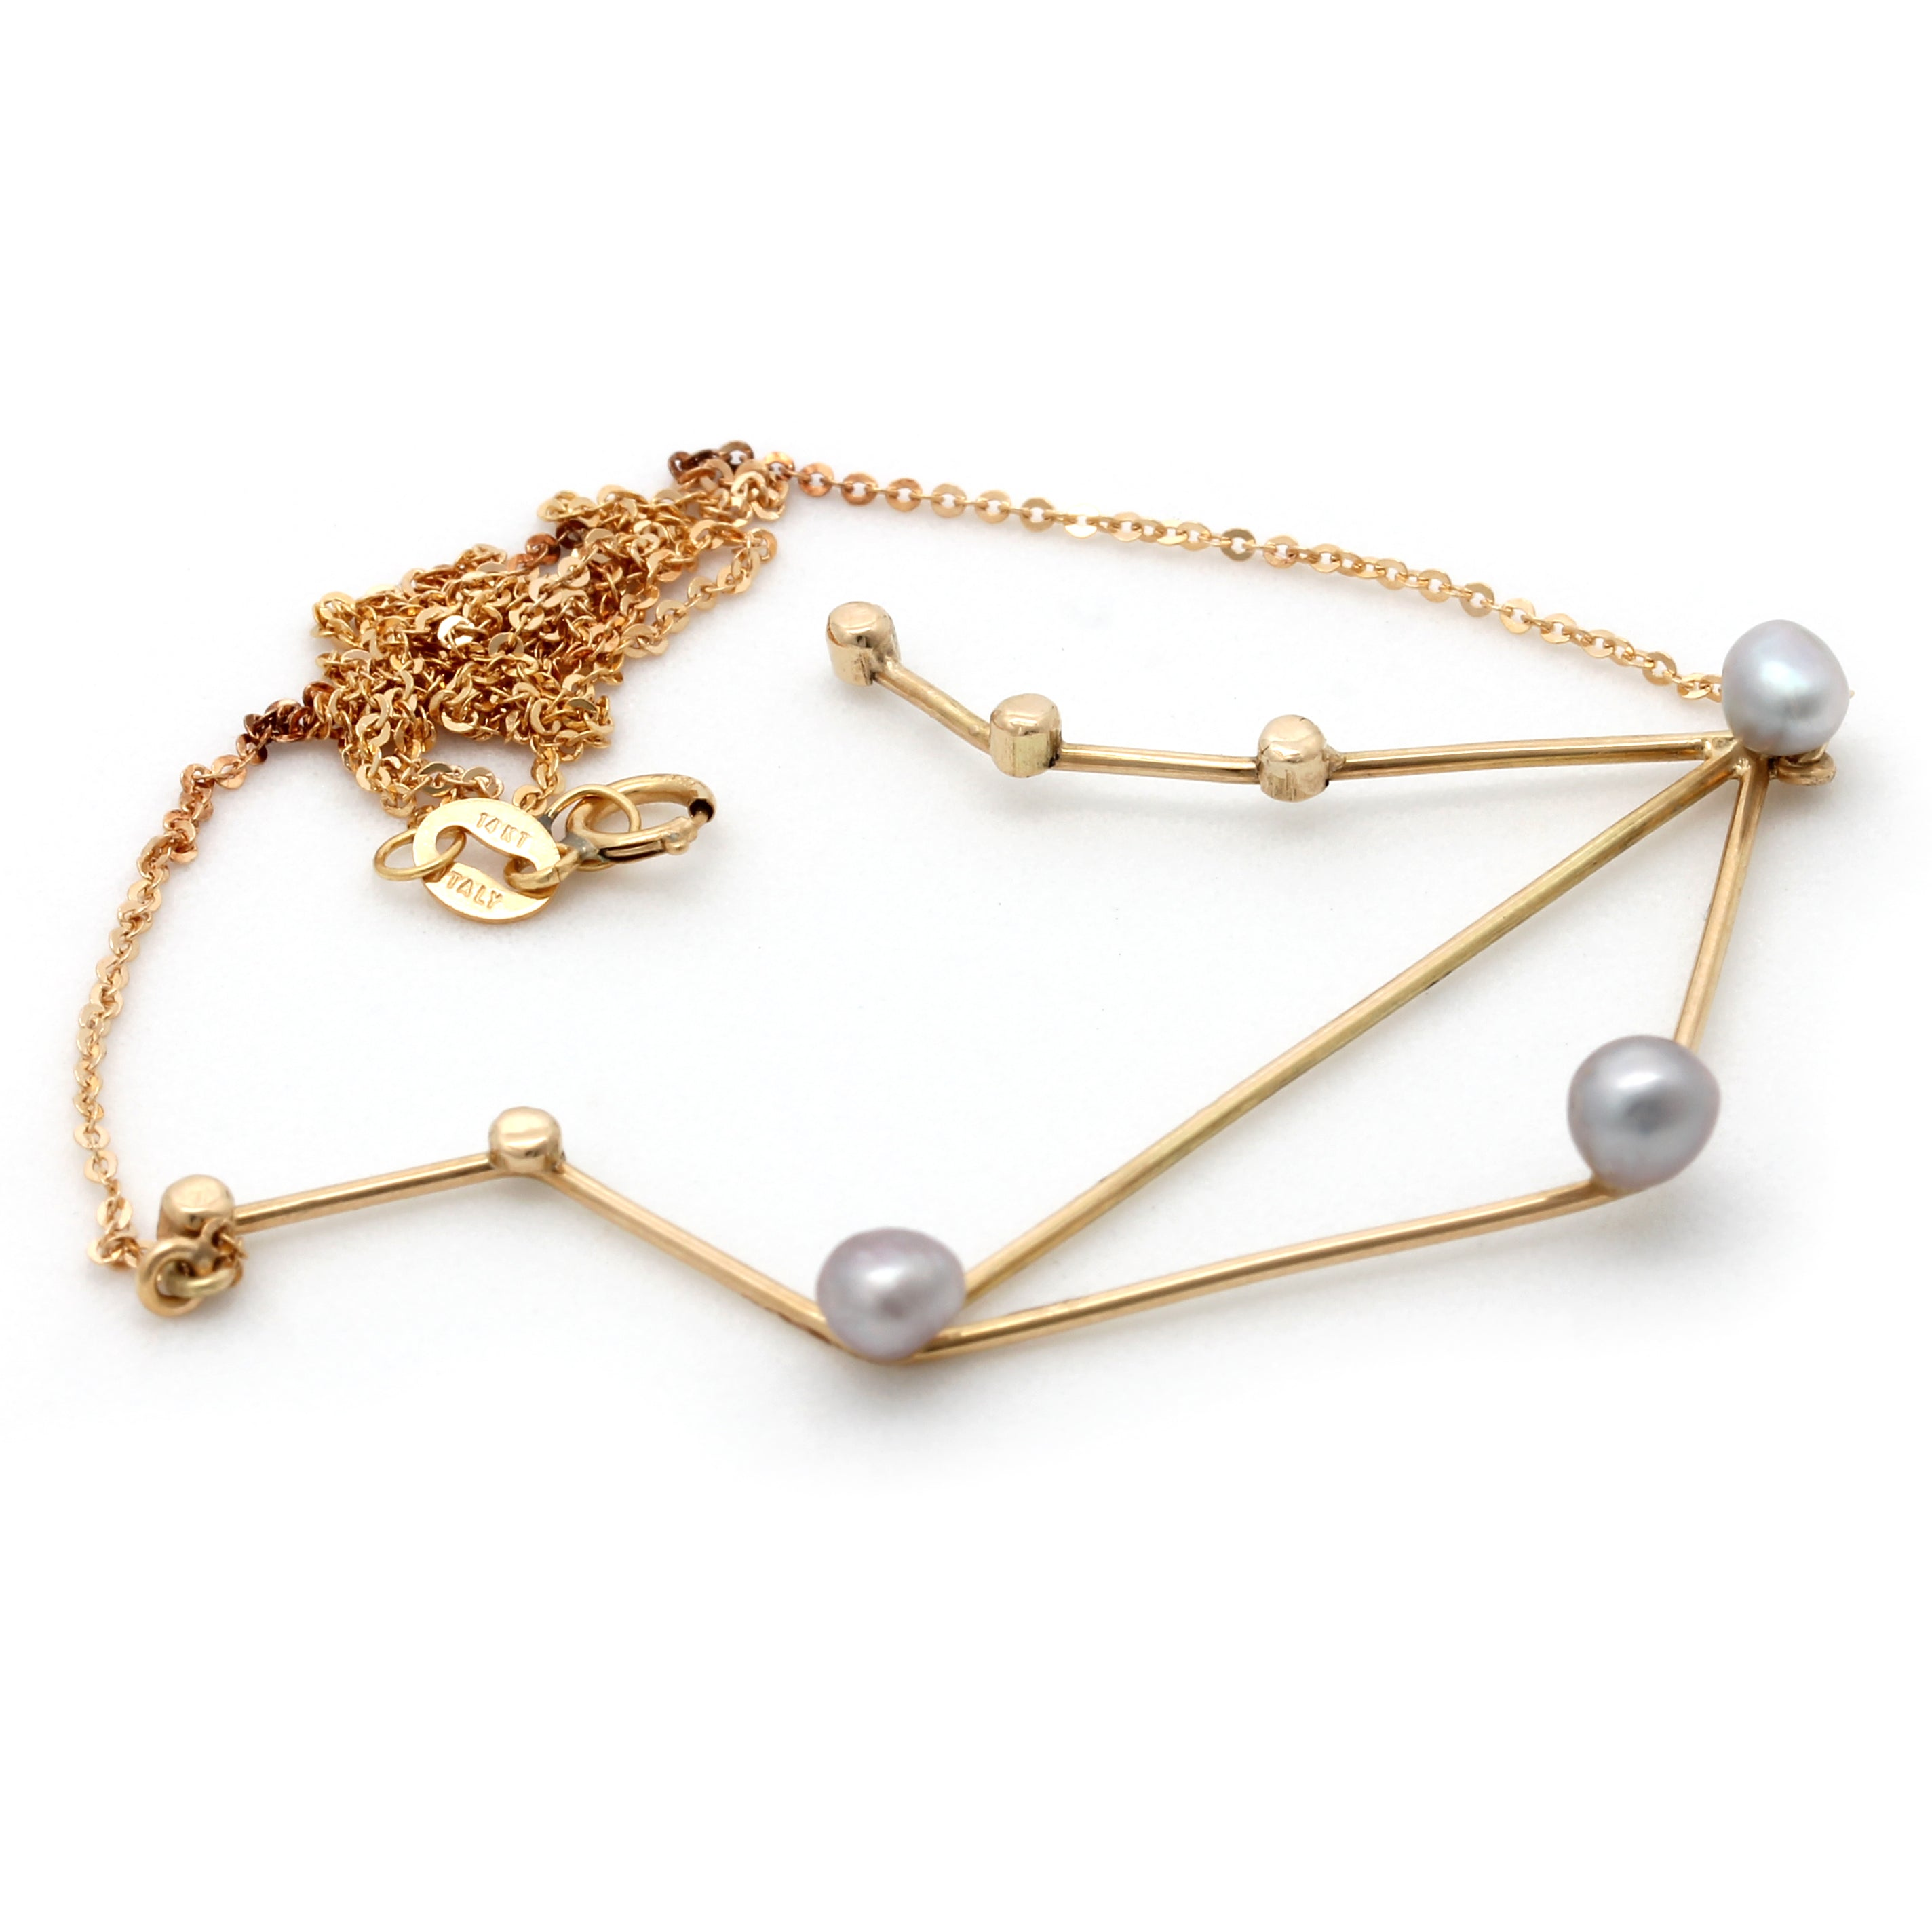 """Libra"" 14K Yellow Gold Pendant and Chain with Cortez Keshi Pearls"